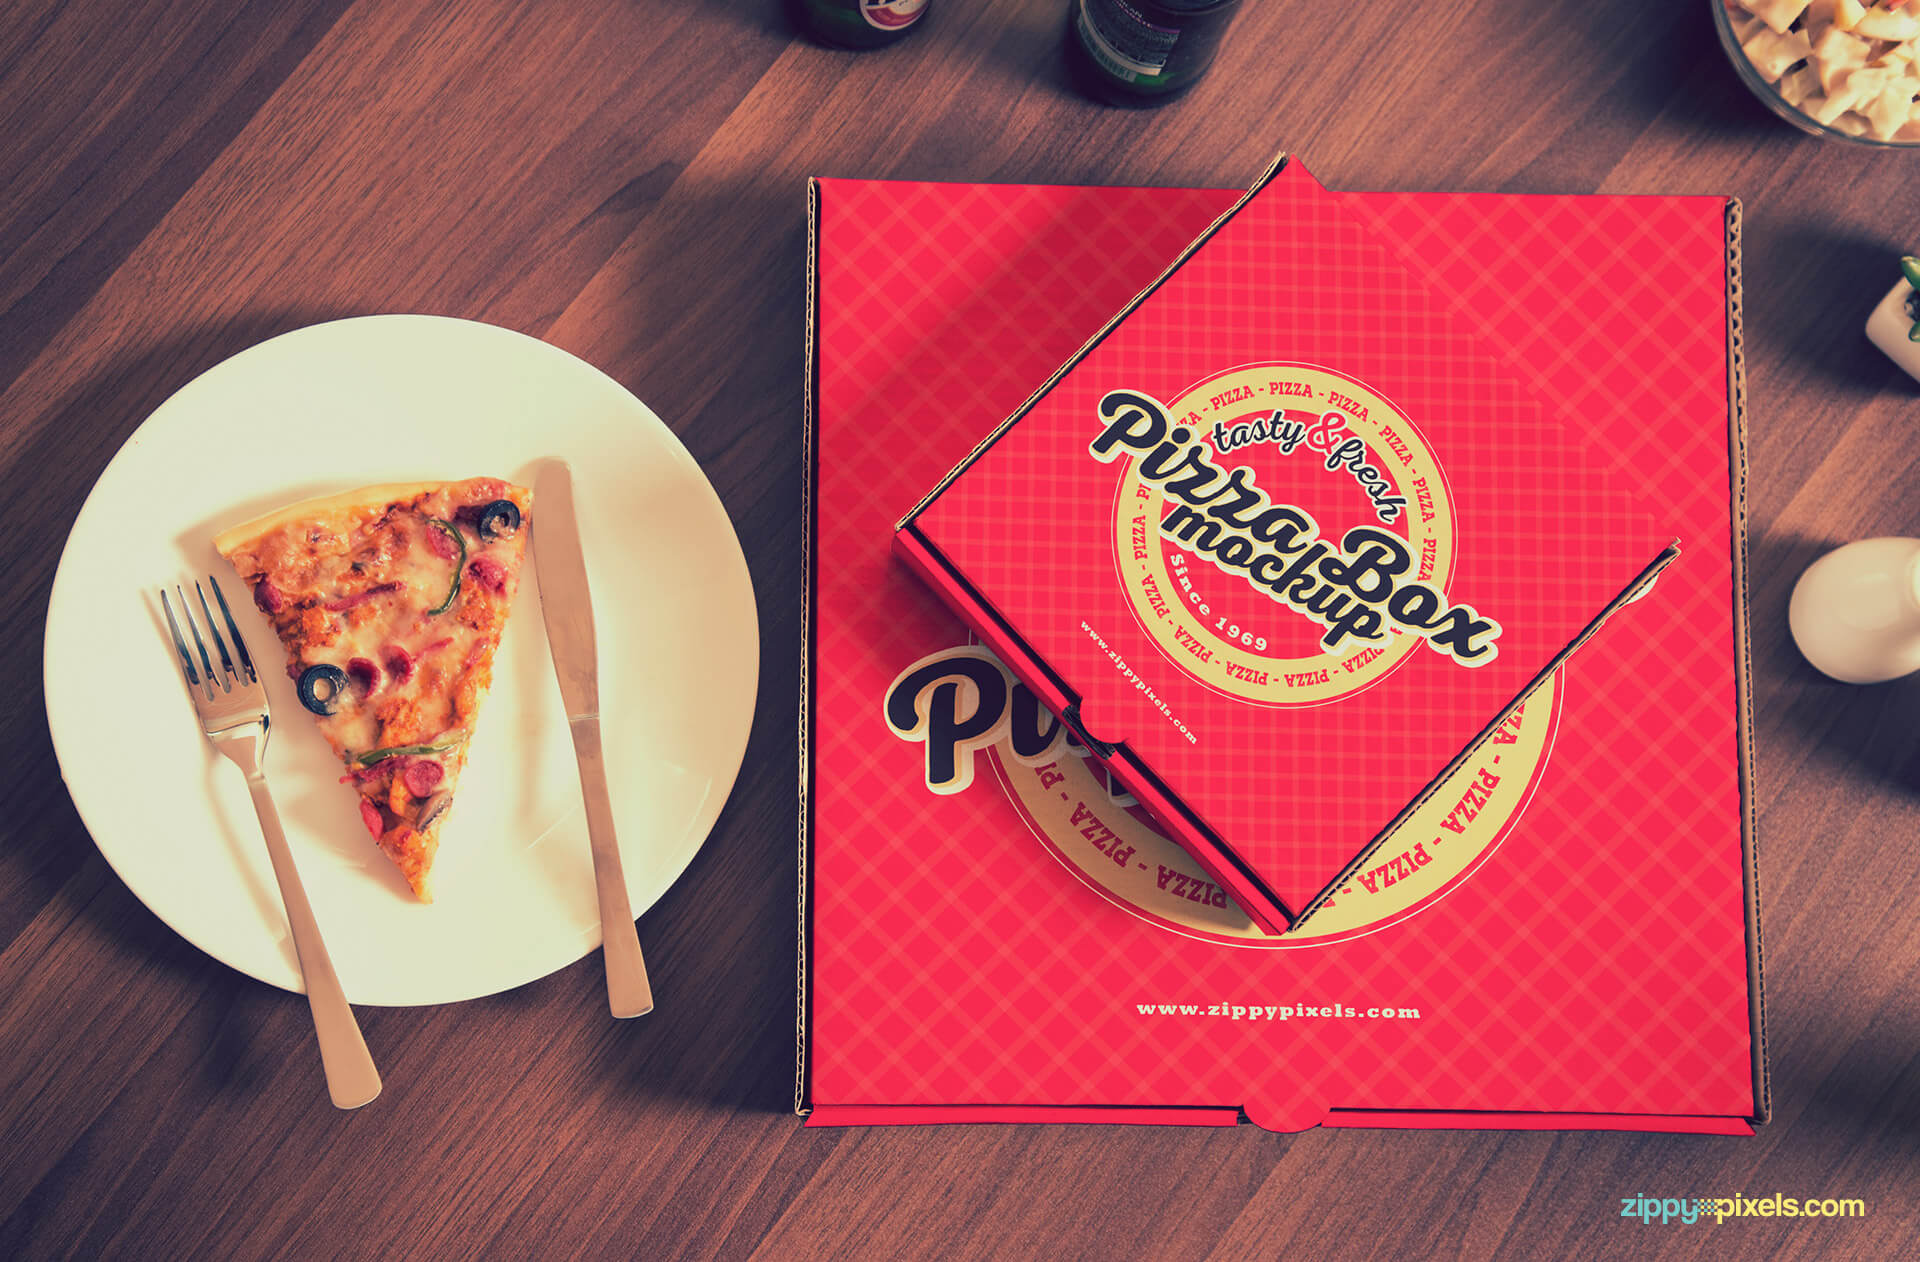 Beautiful way to present your pizza packaging designs.